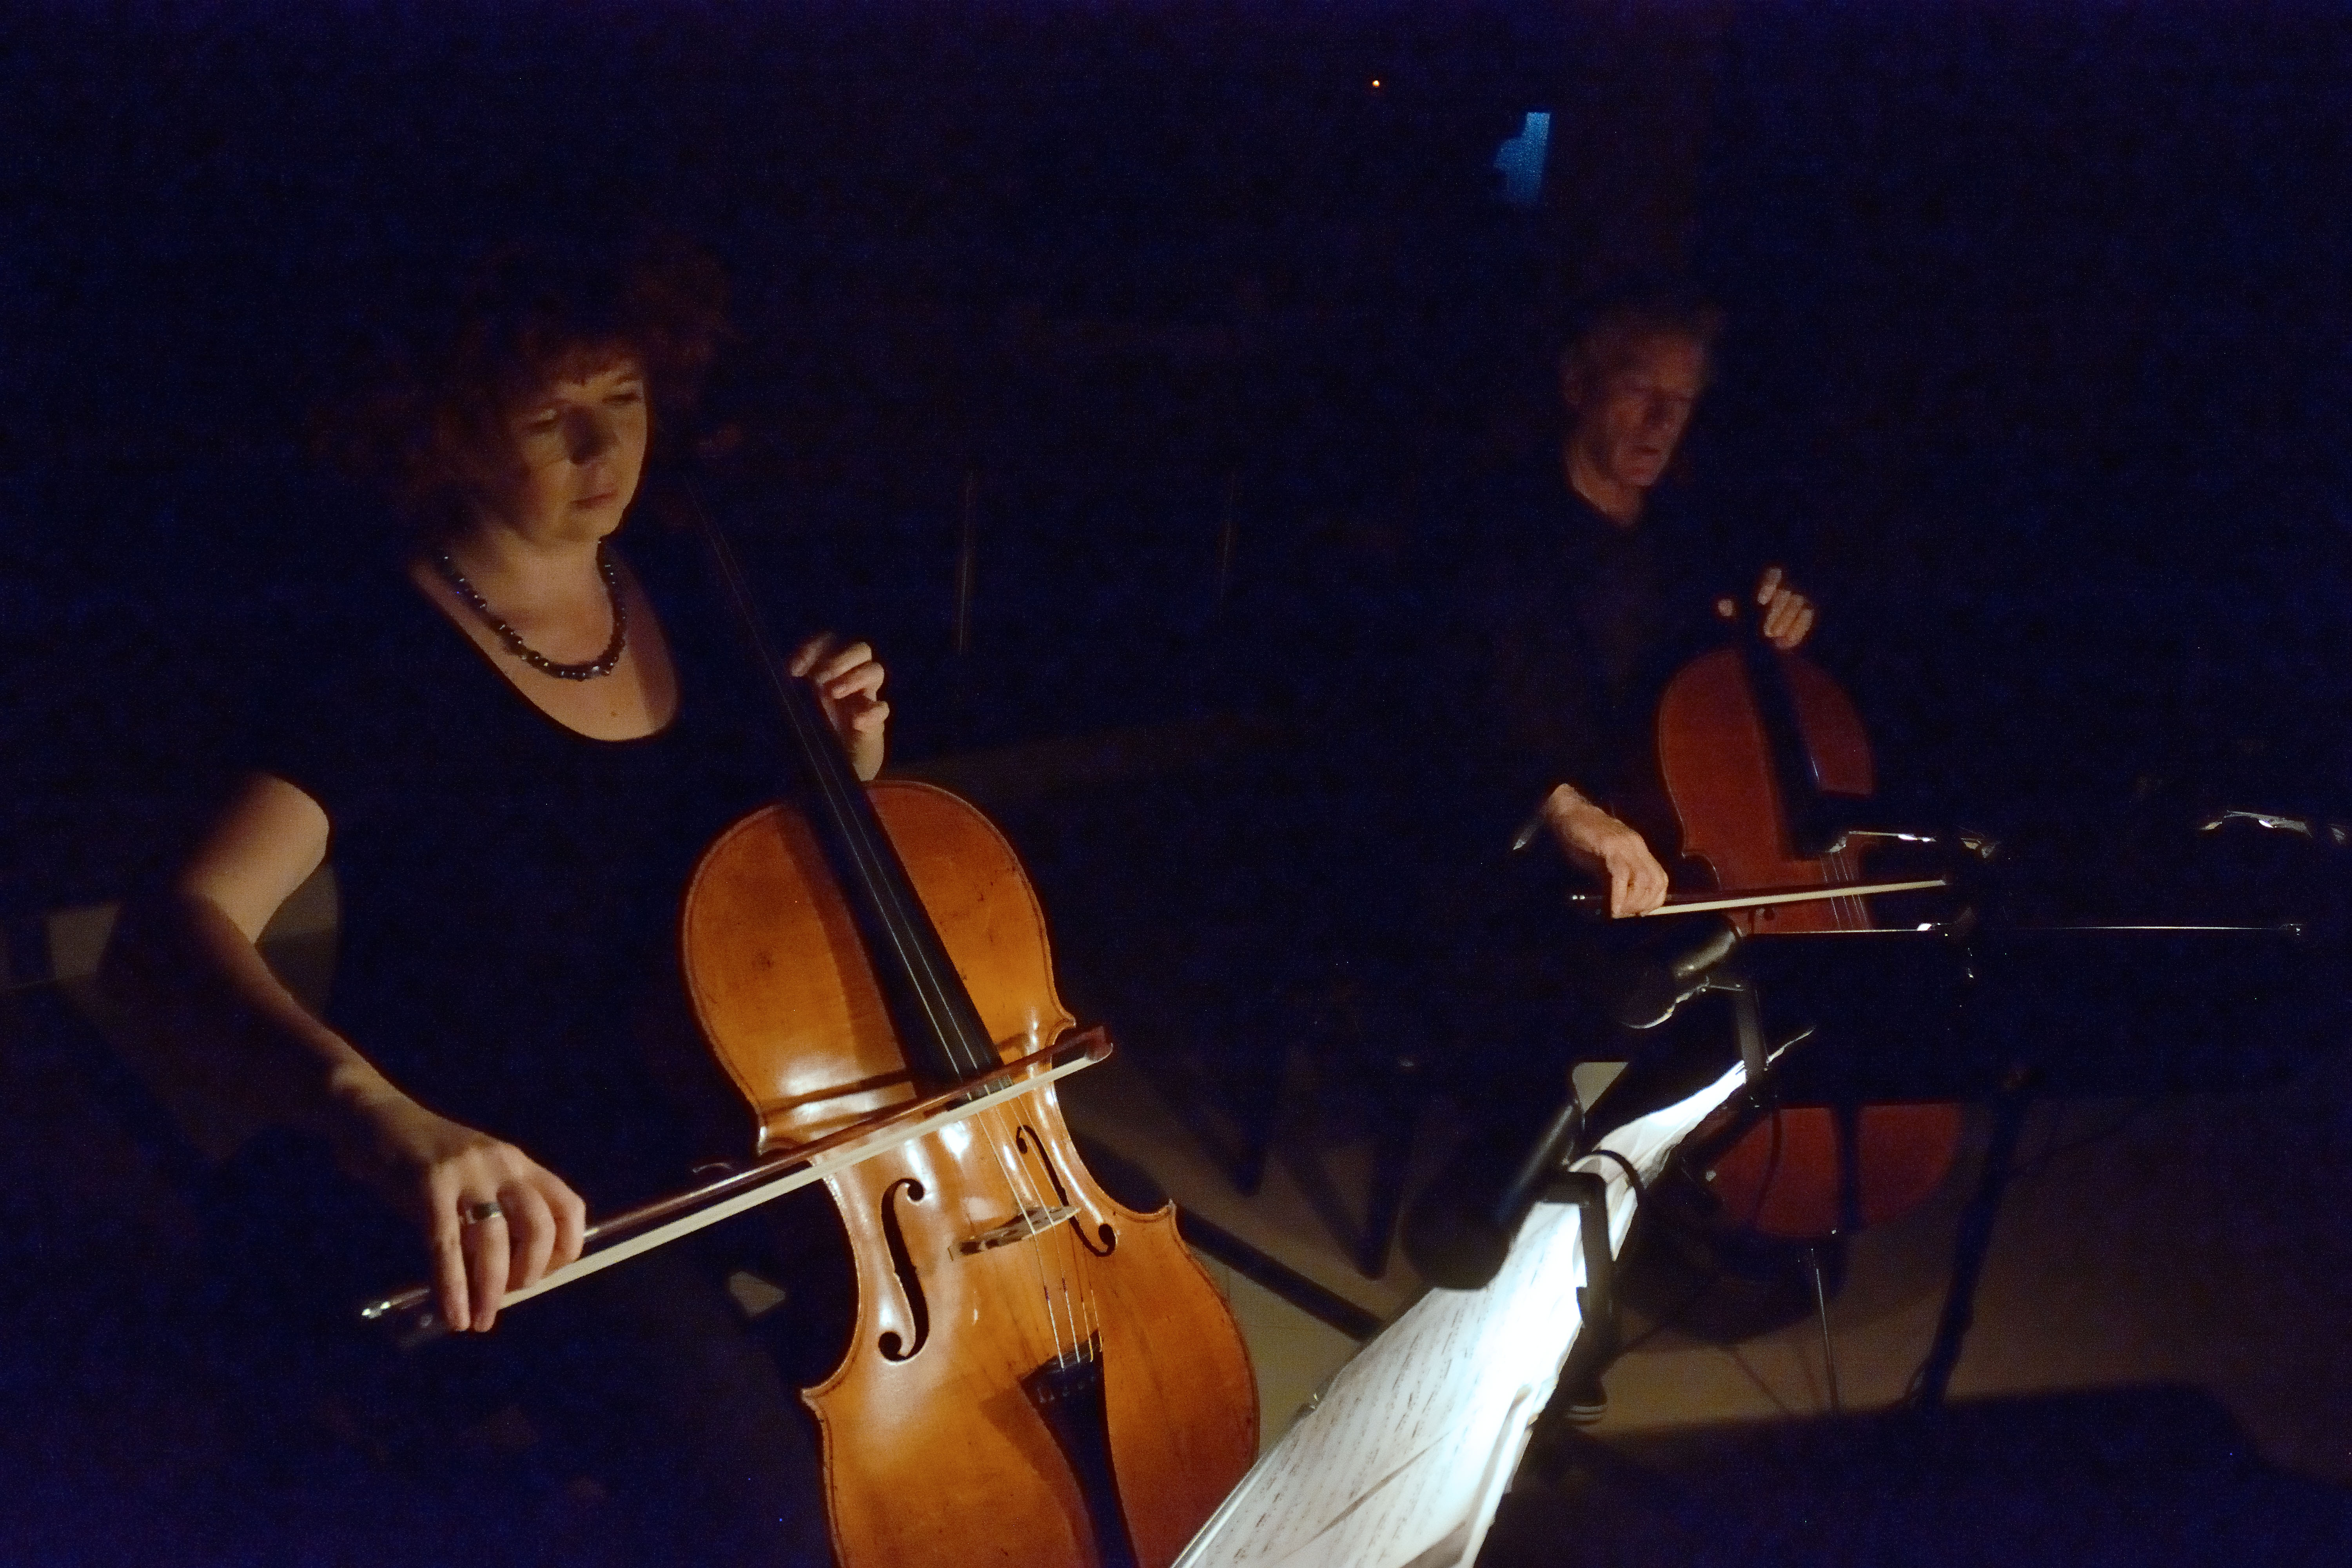 'Bach in the Dark' with Daivd Pereira (Ainslie church) Photo : Peter Hislop